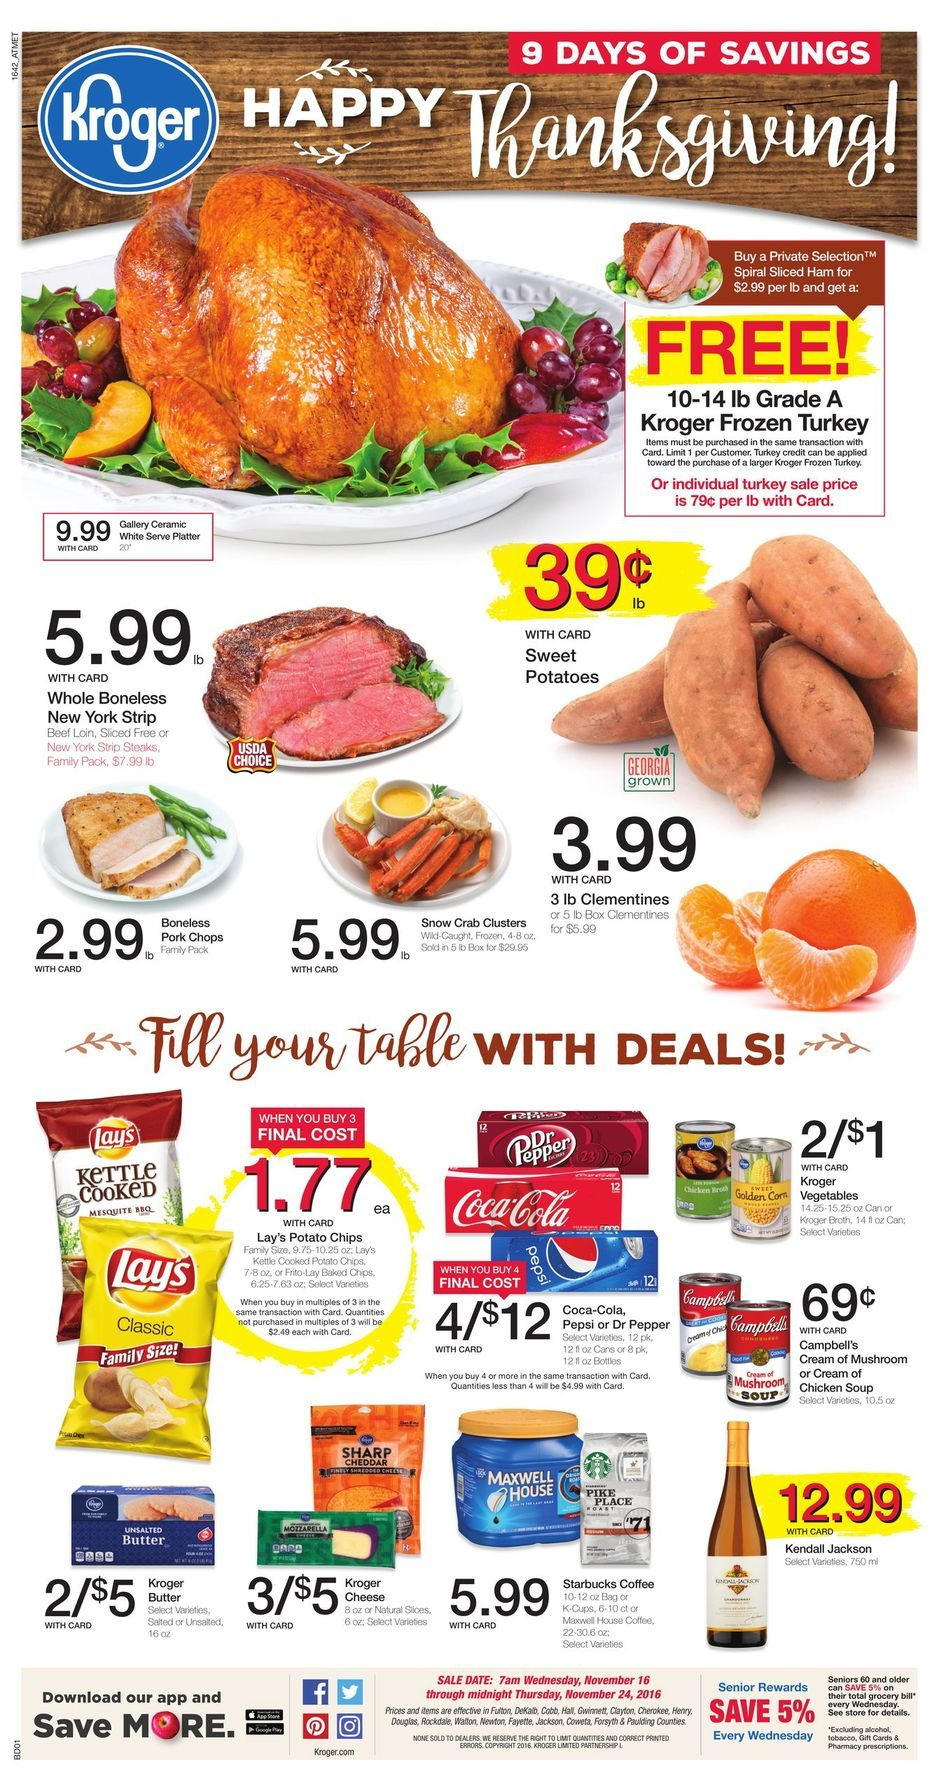 Kroger Weekly Ad Thanksgiving Turkey Sales Http Krogeraddict Com Kroger Weekly Ad Circular And Coupons Cooking Recipes Desserts Kroger Weekly Ads